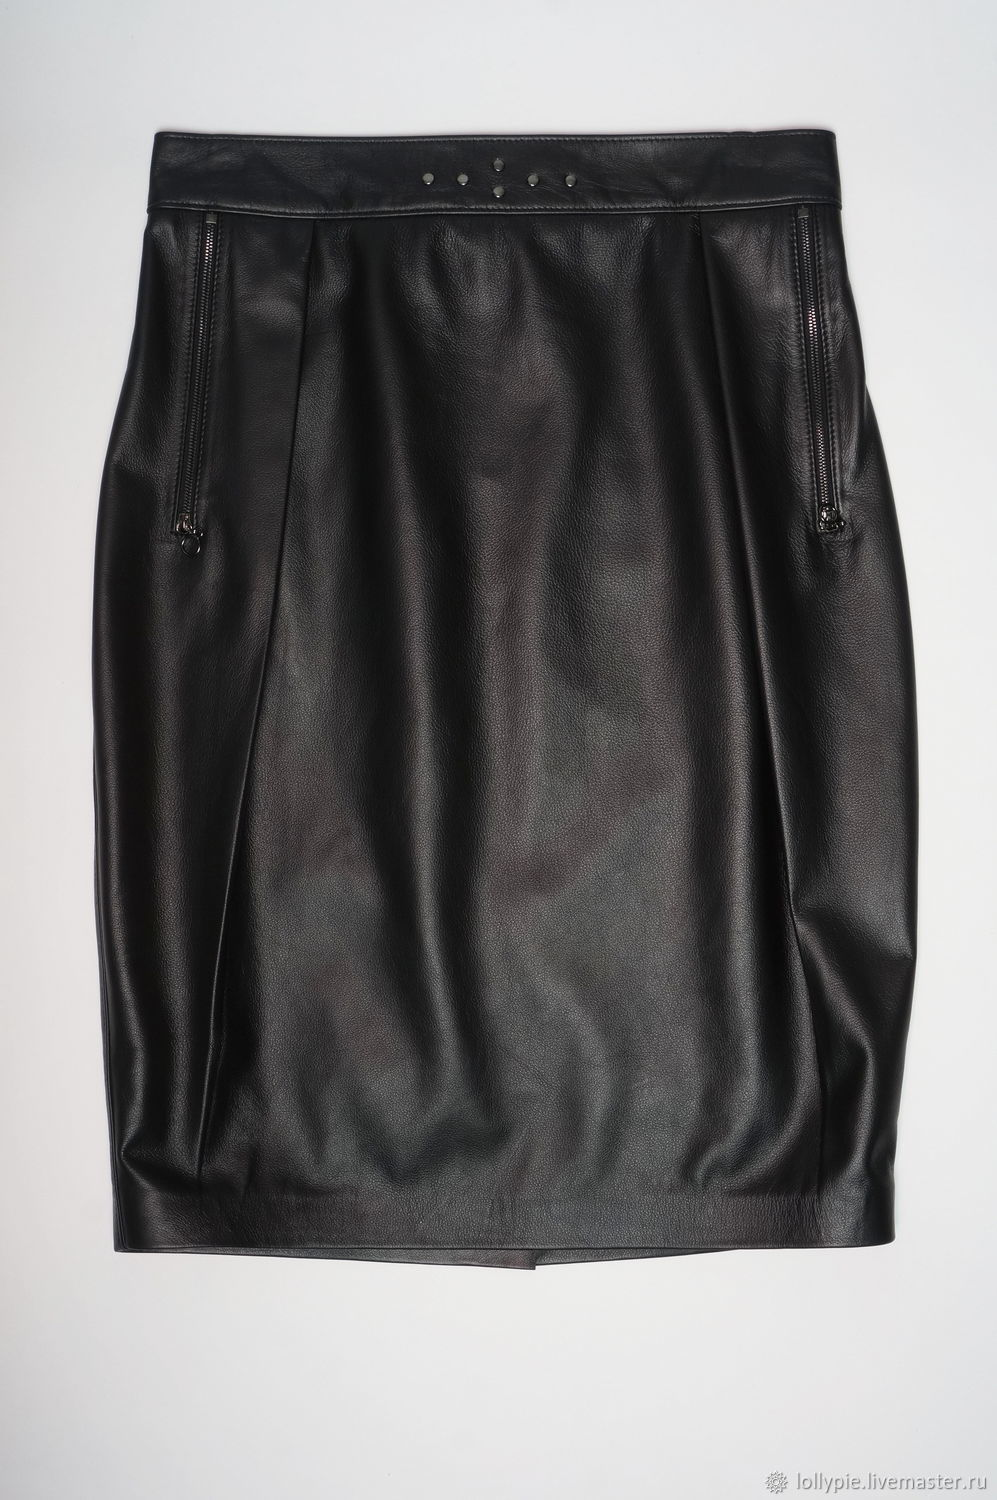 genuine leather skirt with pleats, Skirts, Moscow,  Фото №1